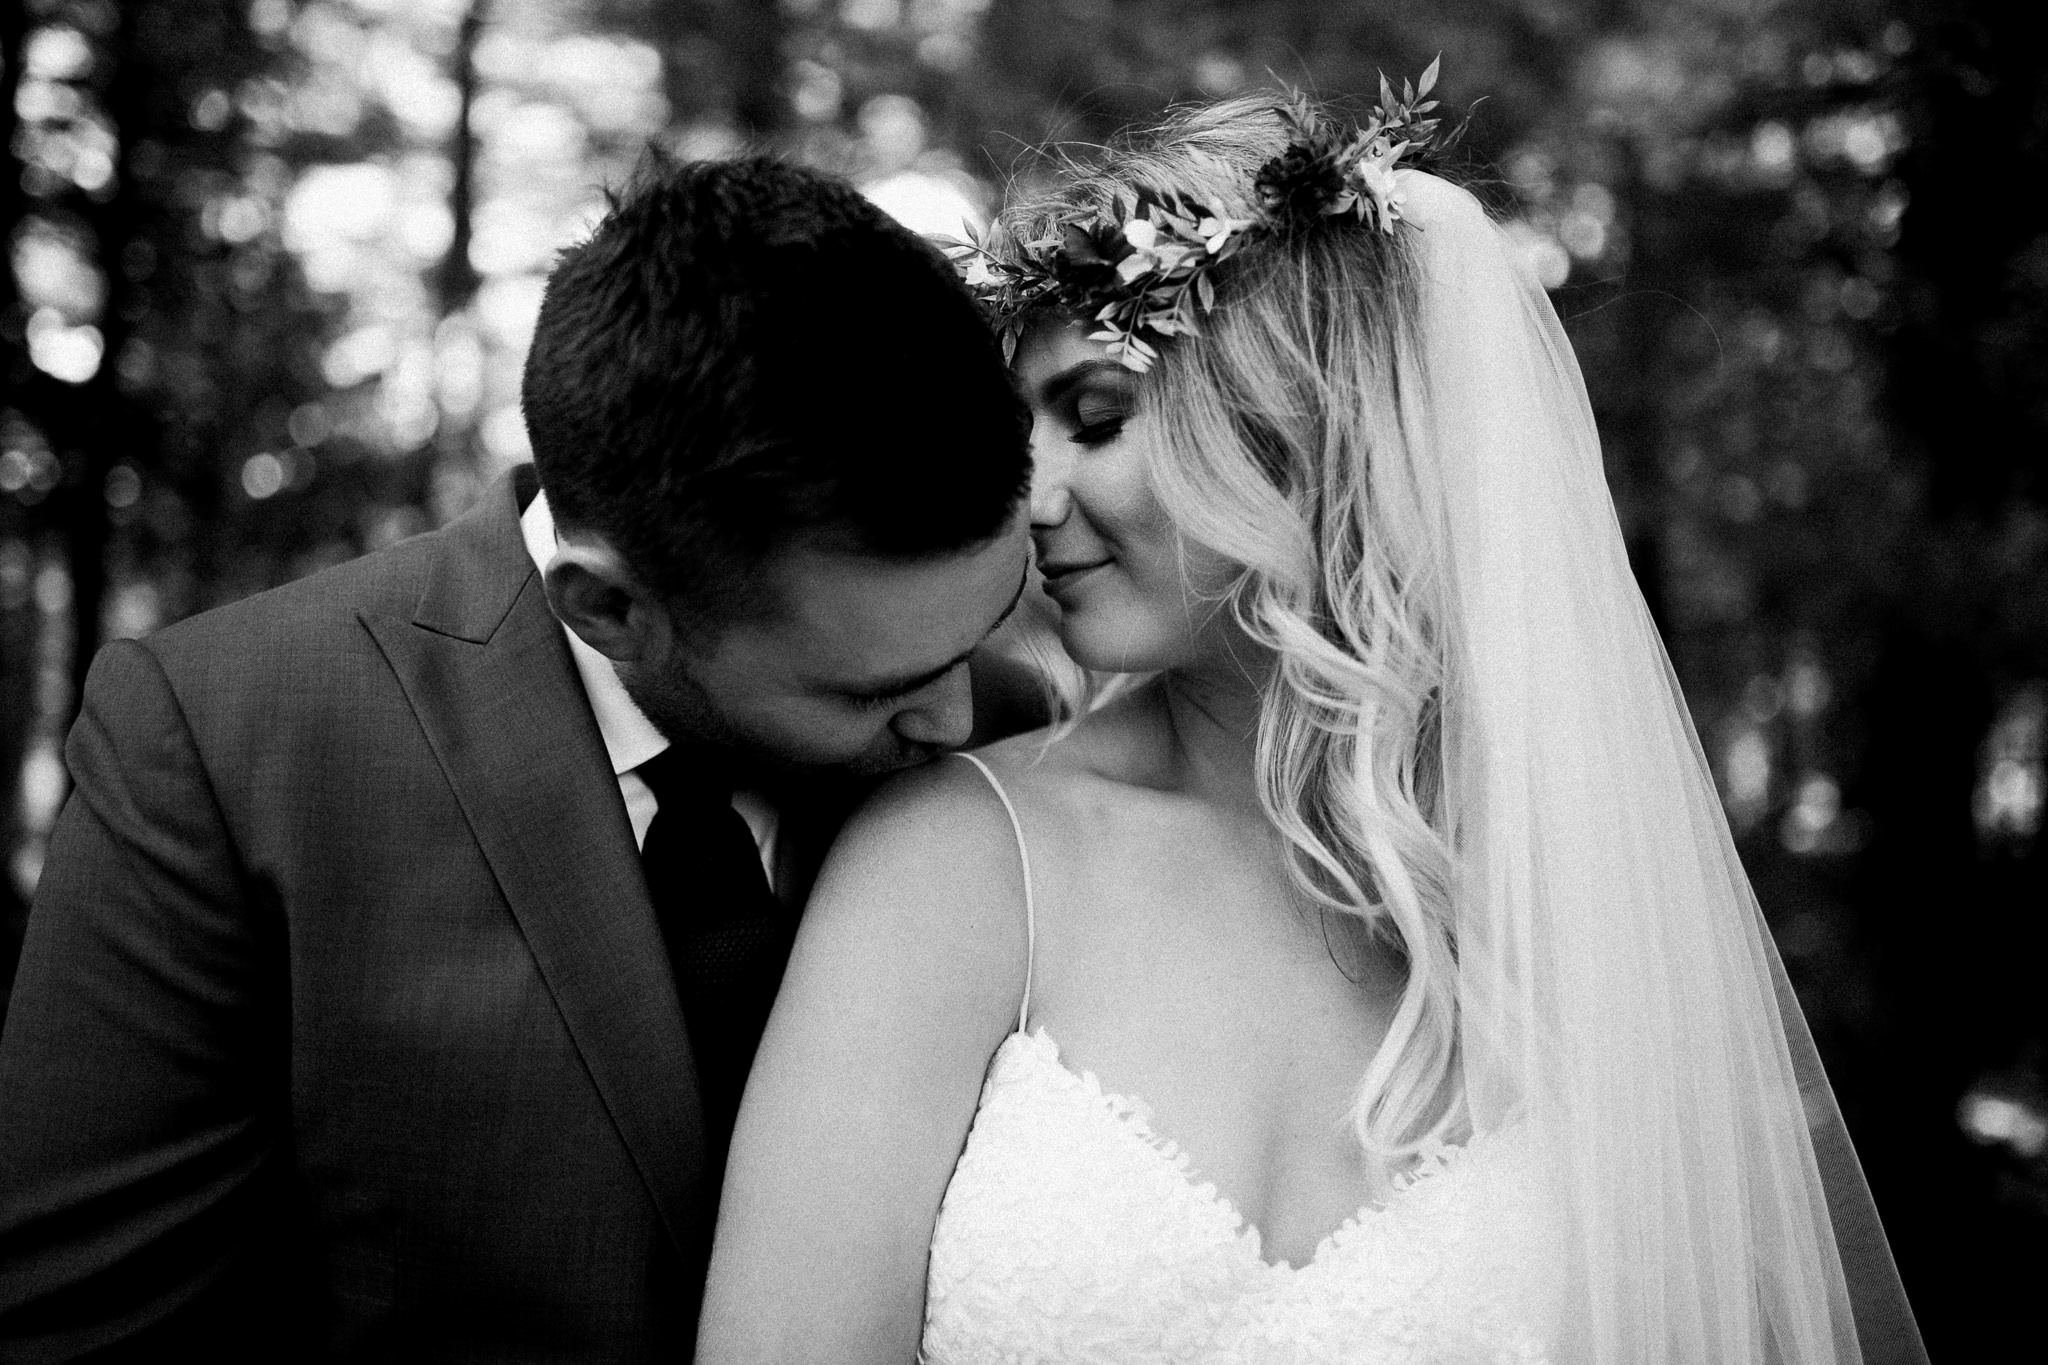 Muskoka lakeside wedding at Port Cunnington Lodge by Max Wong Photo (16)